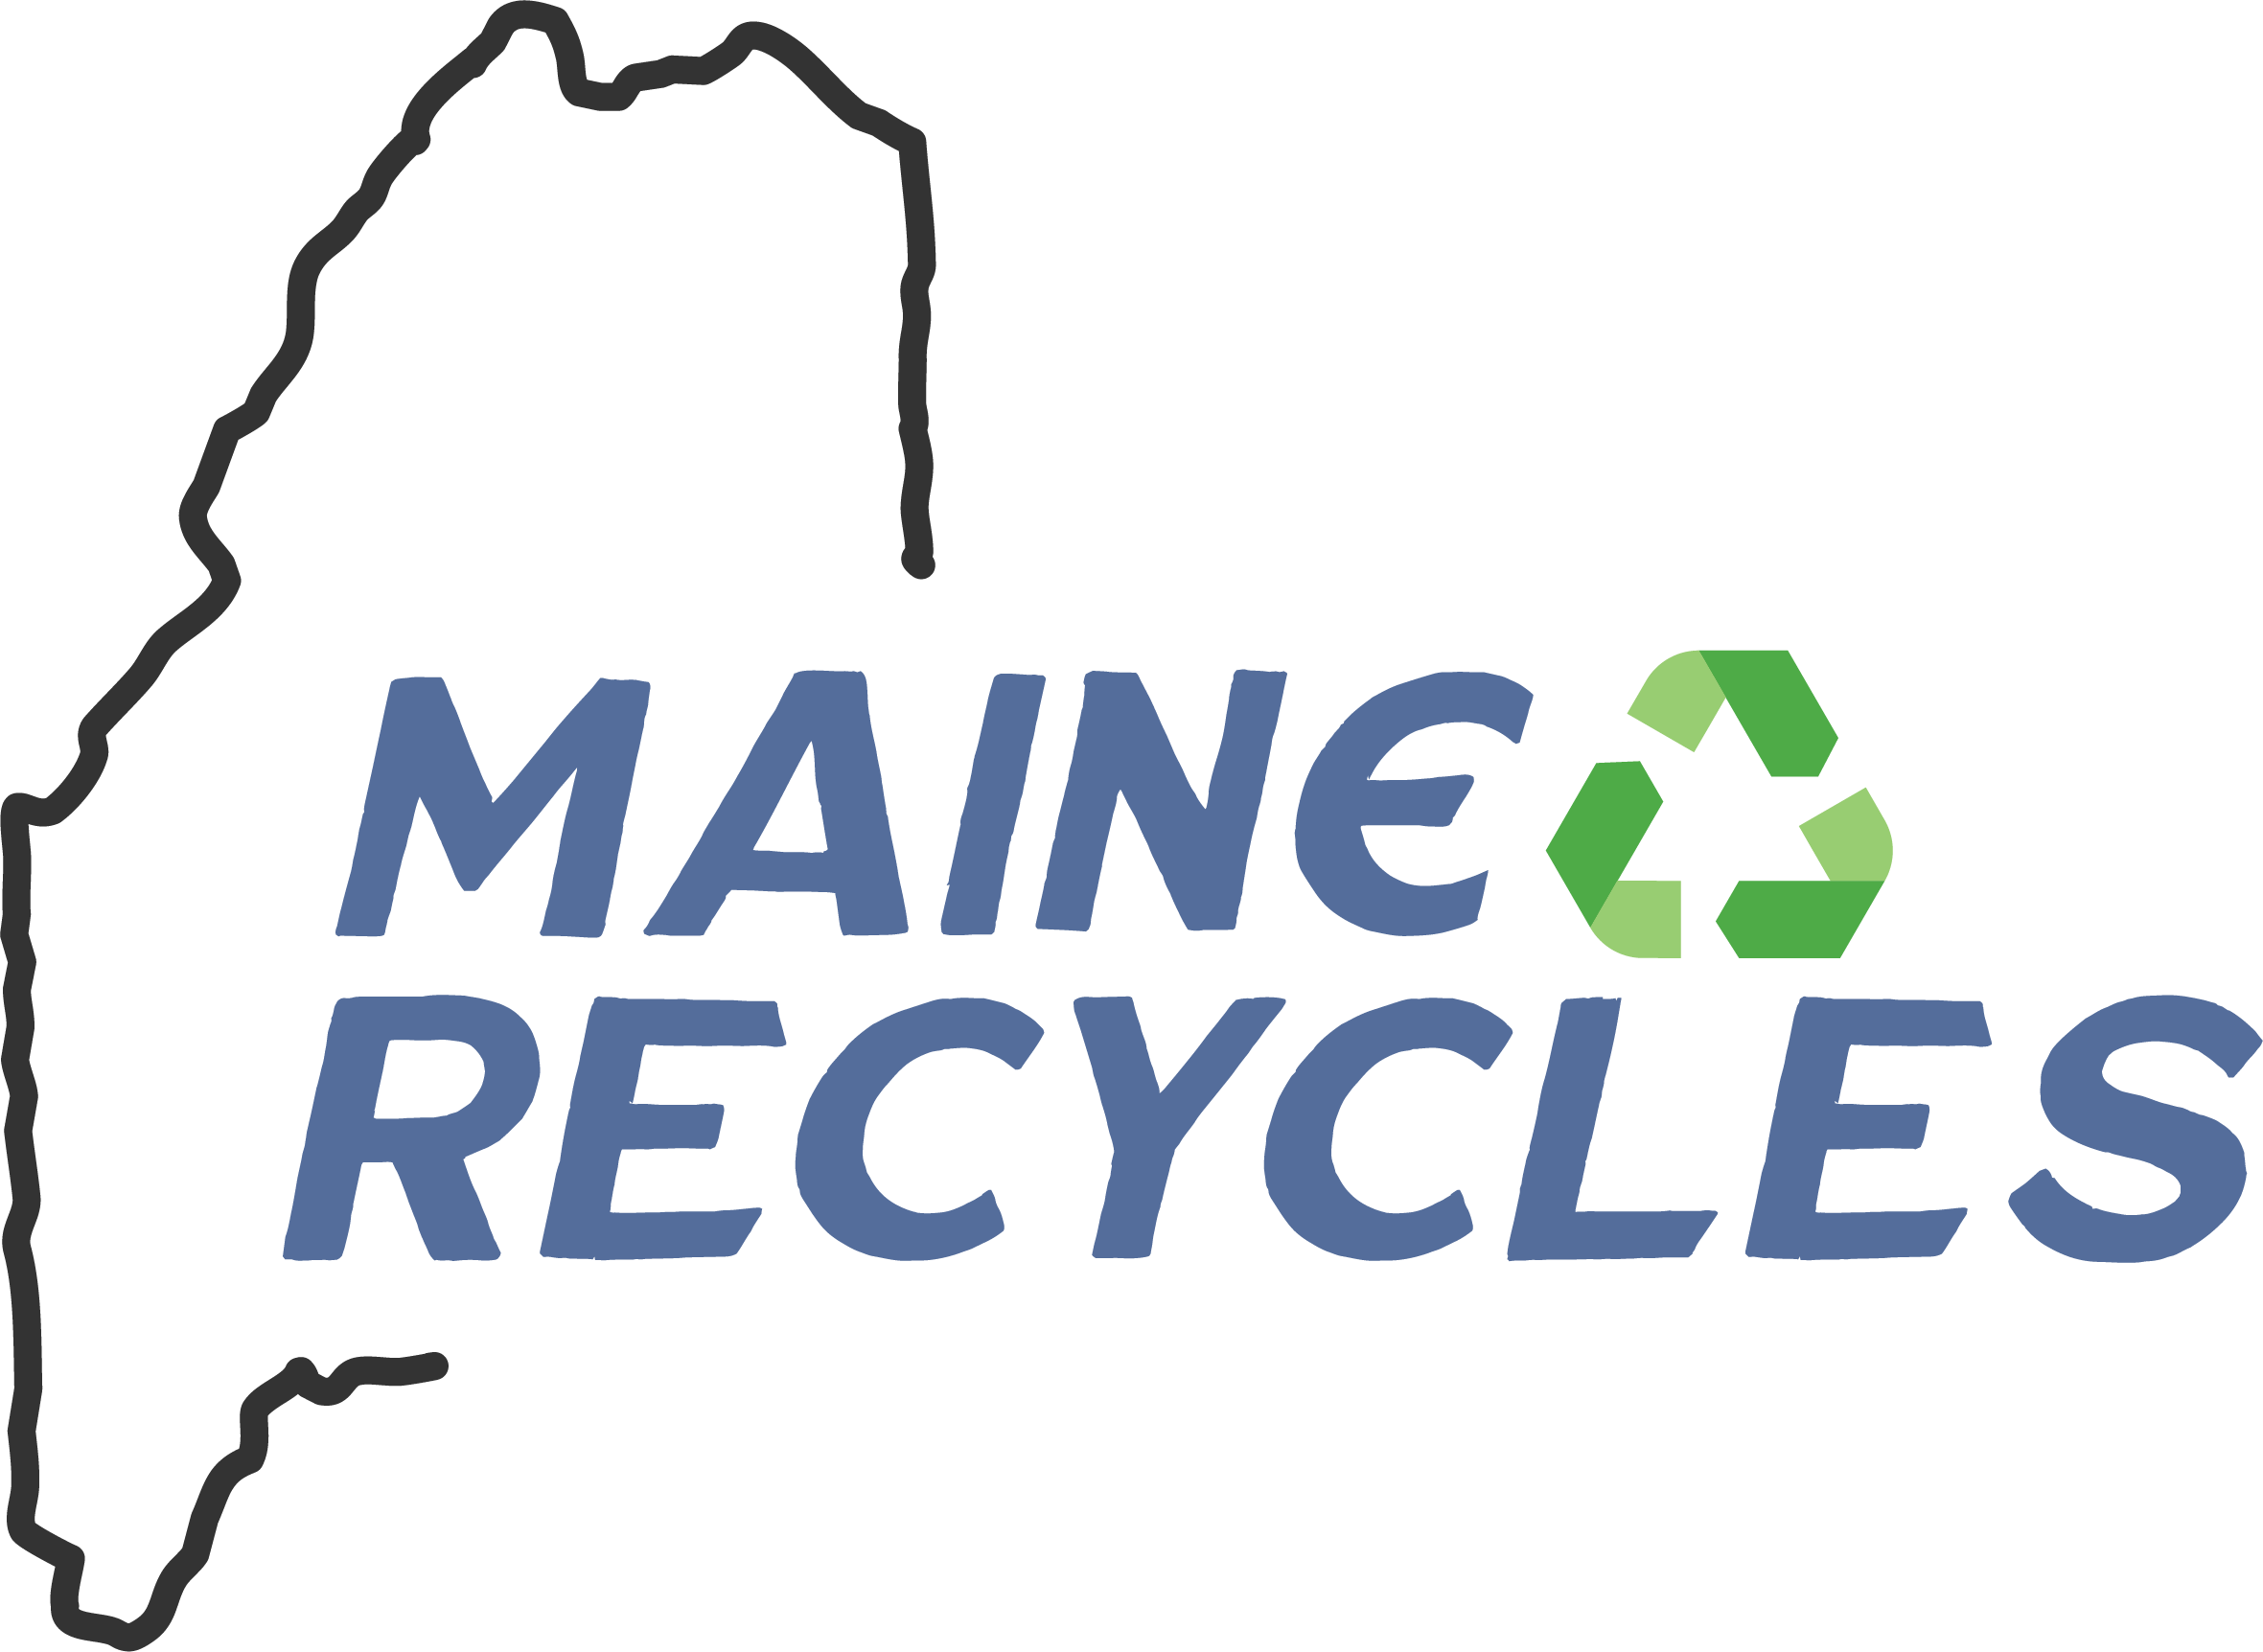 Maine Recycles